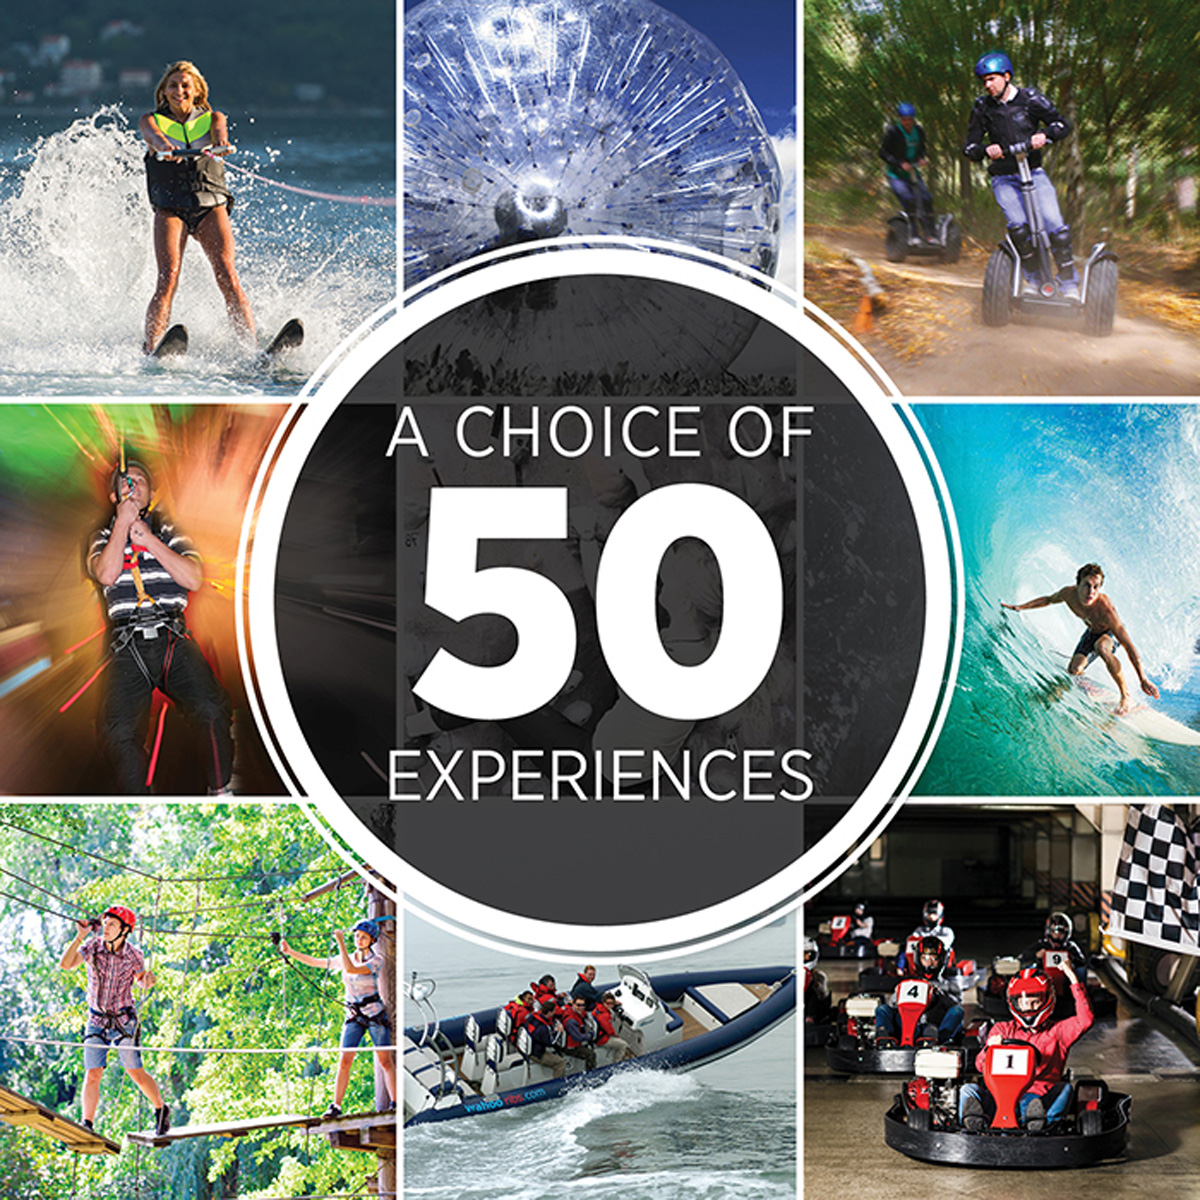 Ultimate Choice for Thrills - Experience Day Choice Pack